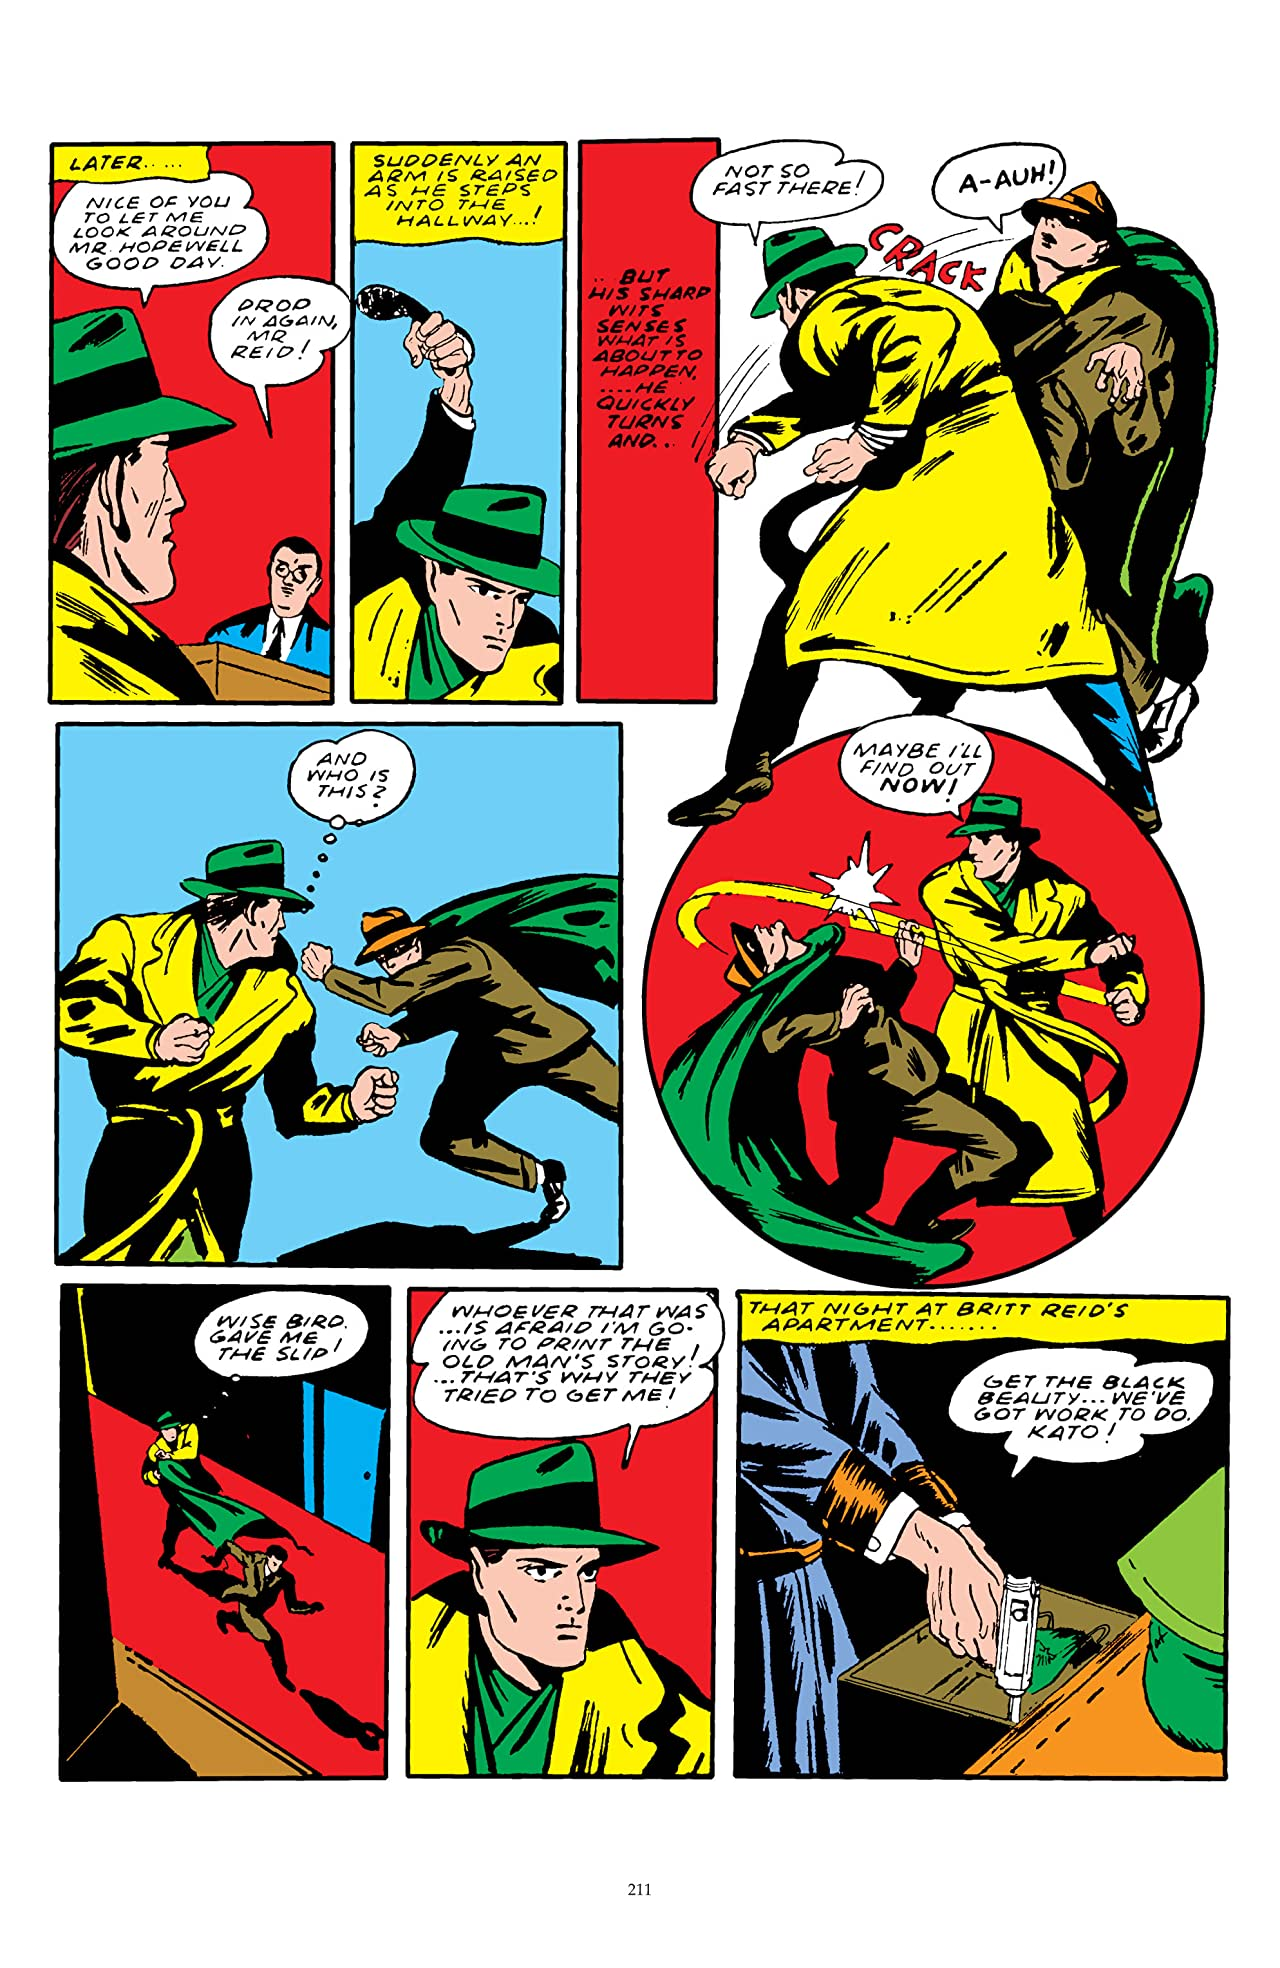 The Green Hornet: Golden Age Re-Mastered #5